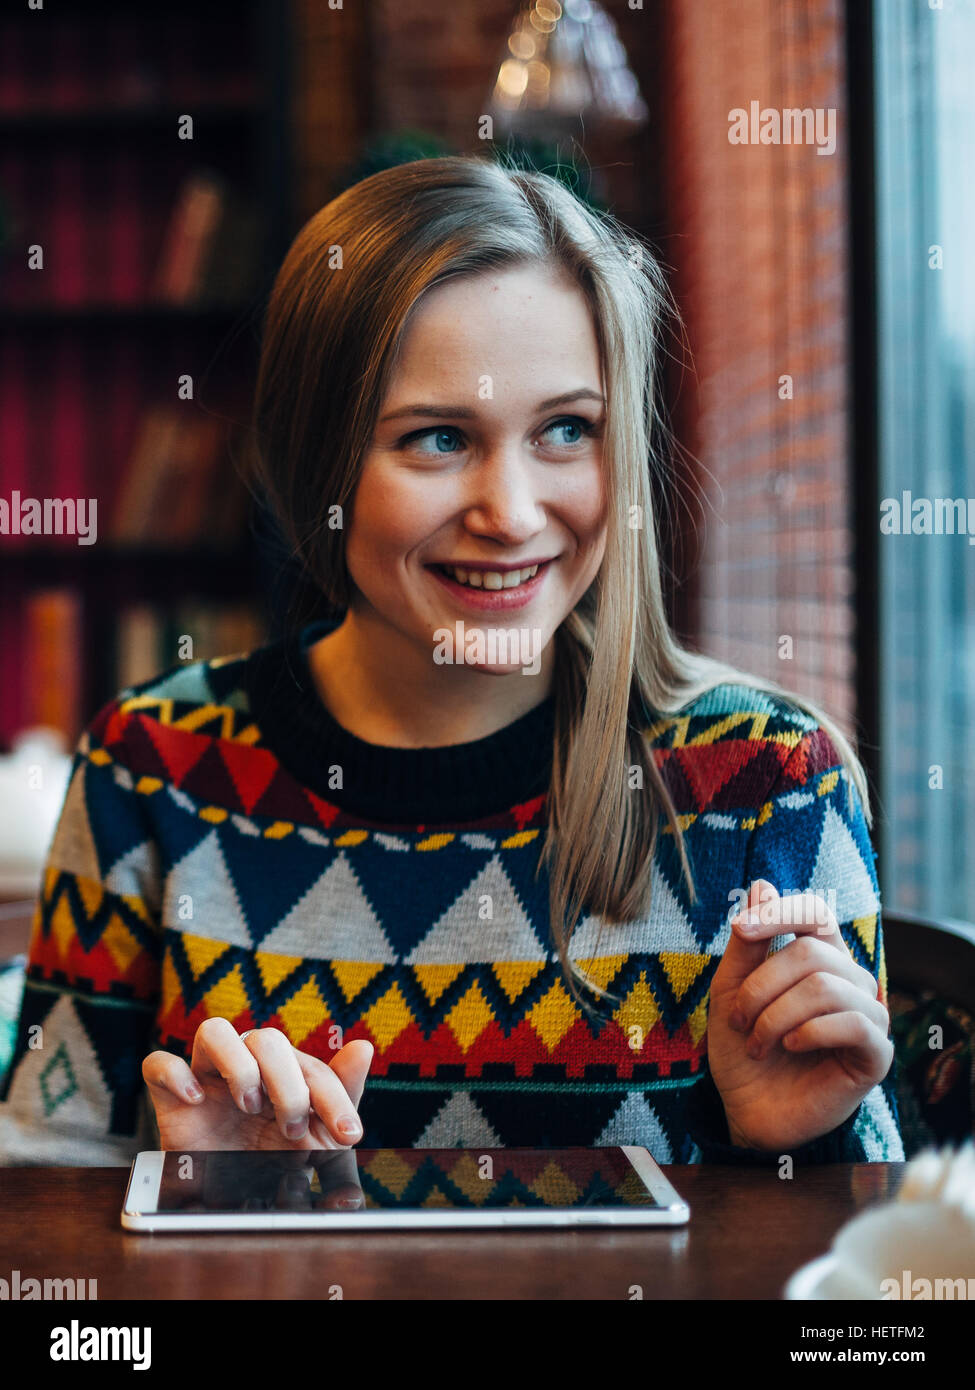 Woman in cafe smilling - Stock Image